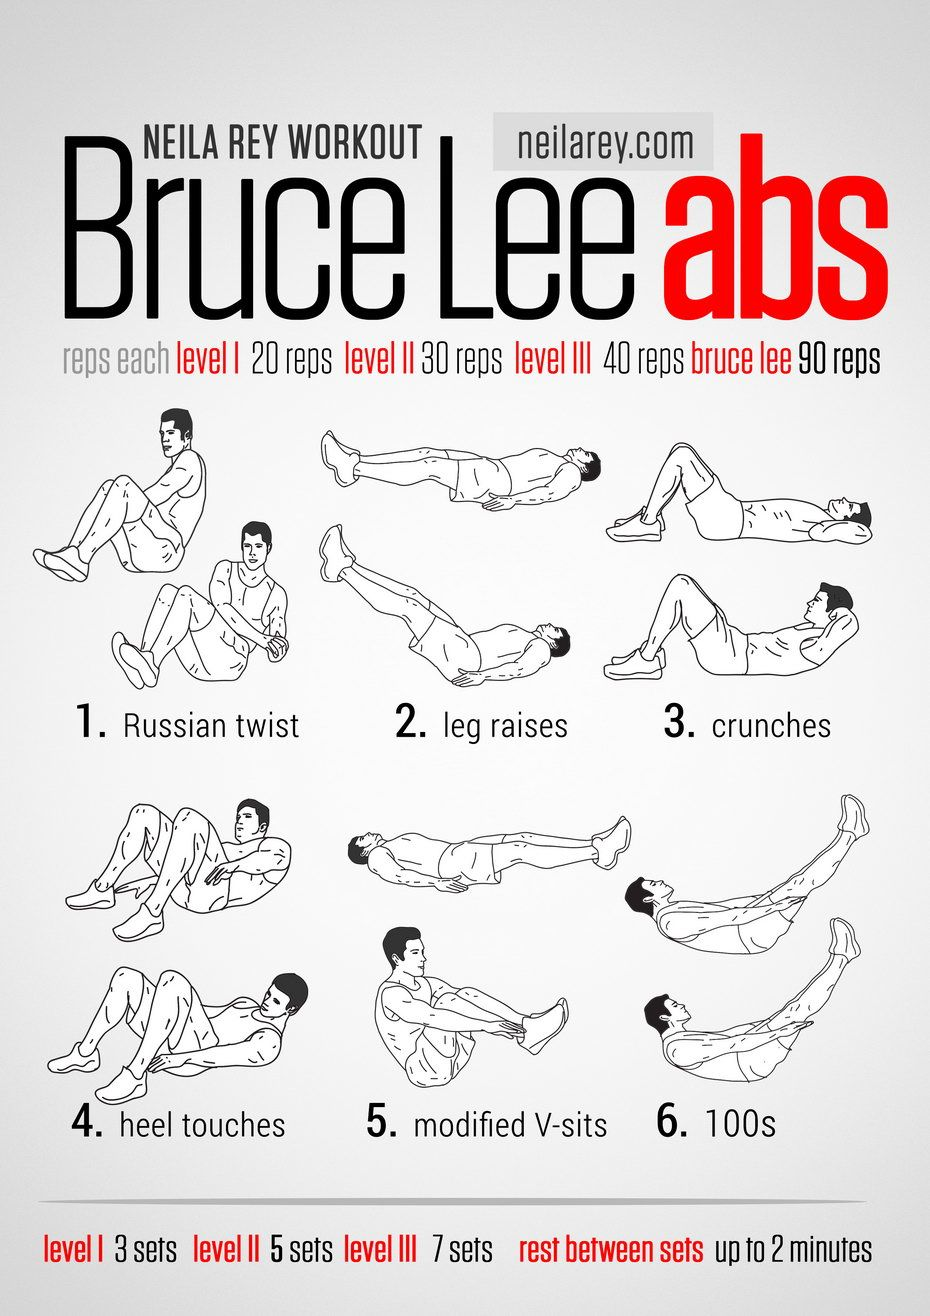 Bruce Lee Abs  Workout  Fitness challenges  Pinterest  Bruce lee